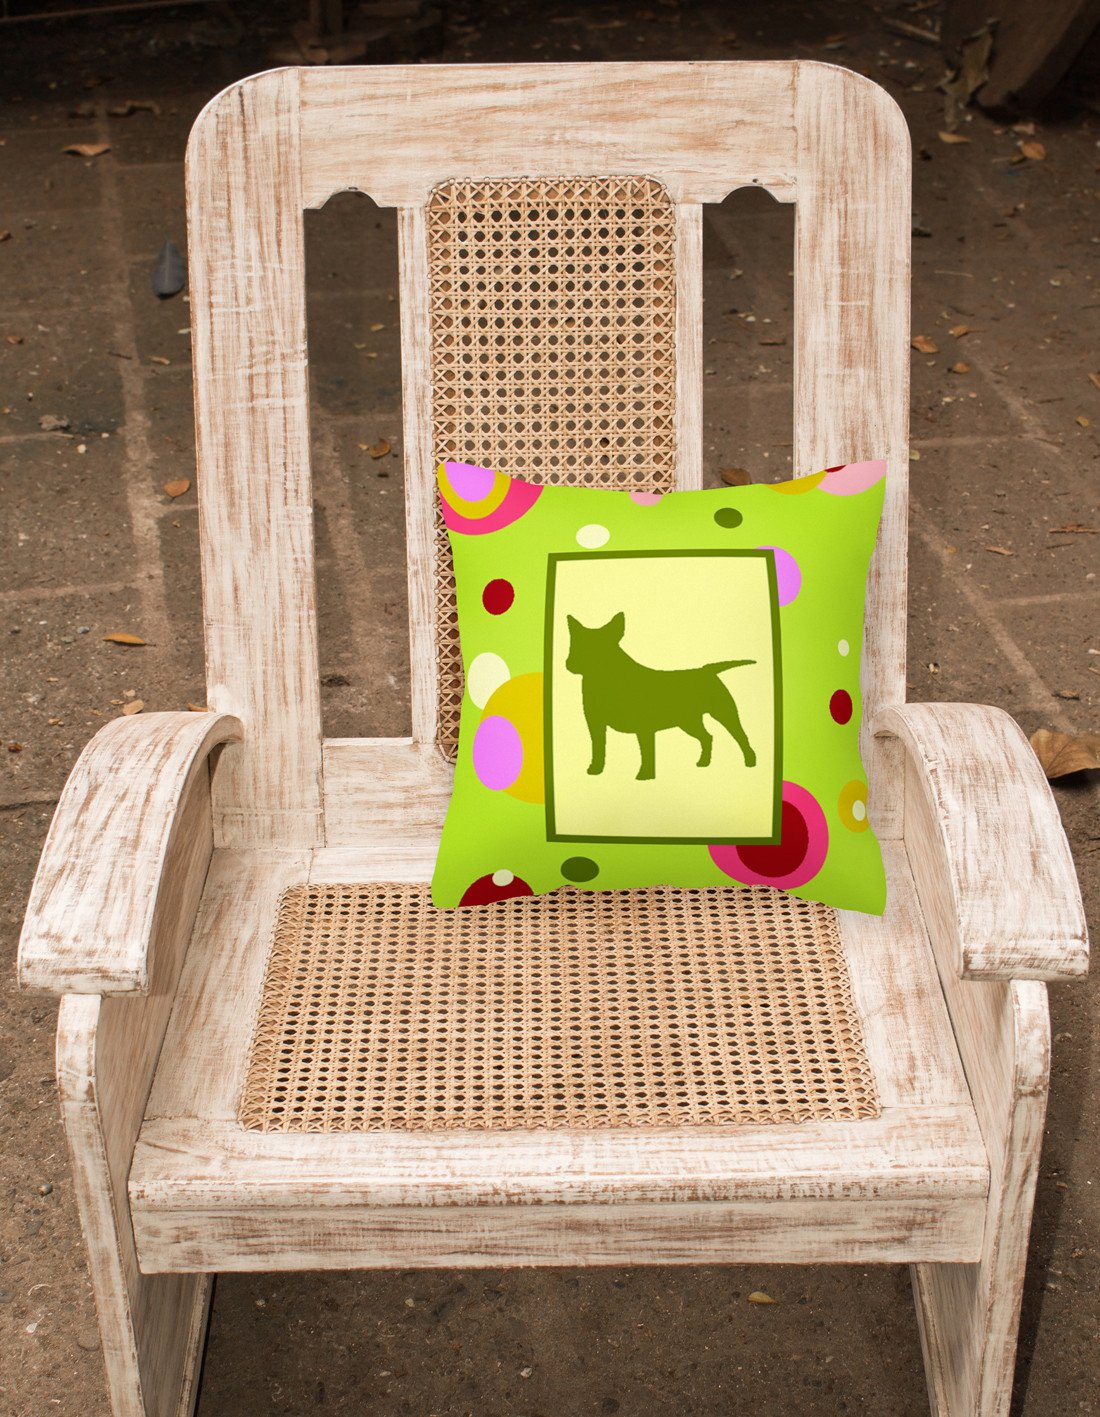 Lime Green Dots Bull Terrier Fabric Decorative Pillow CK1046PW1414 by Caroline's Treasures